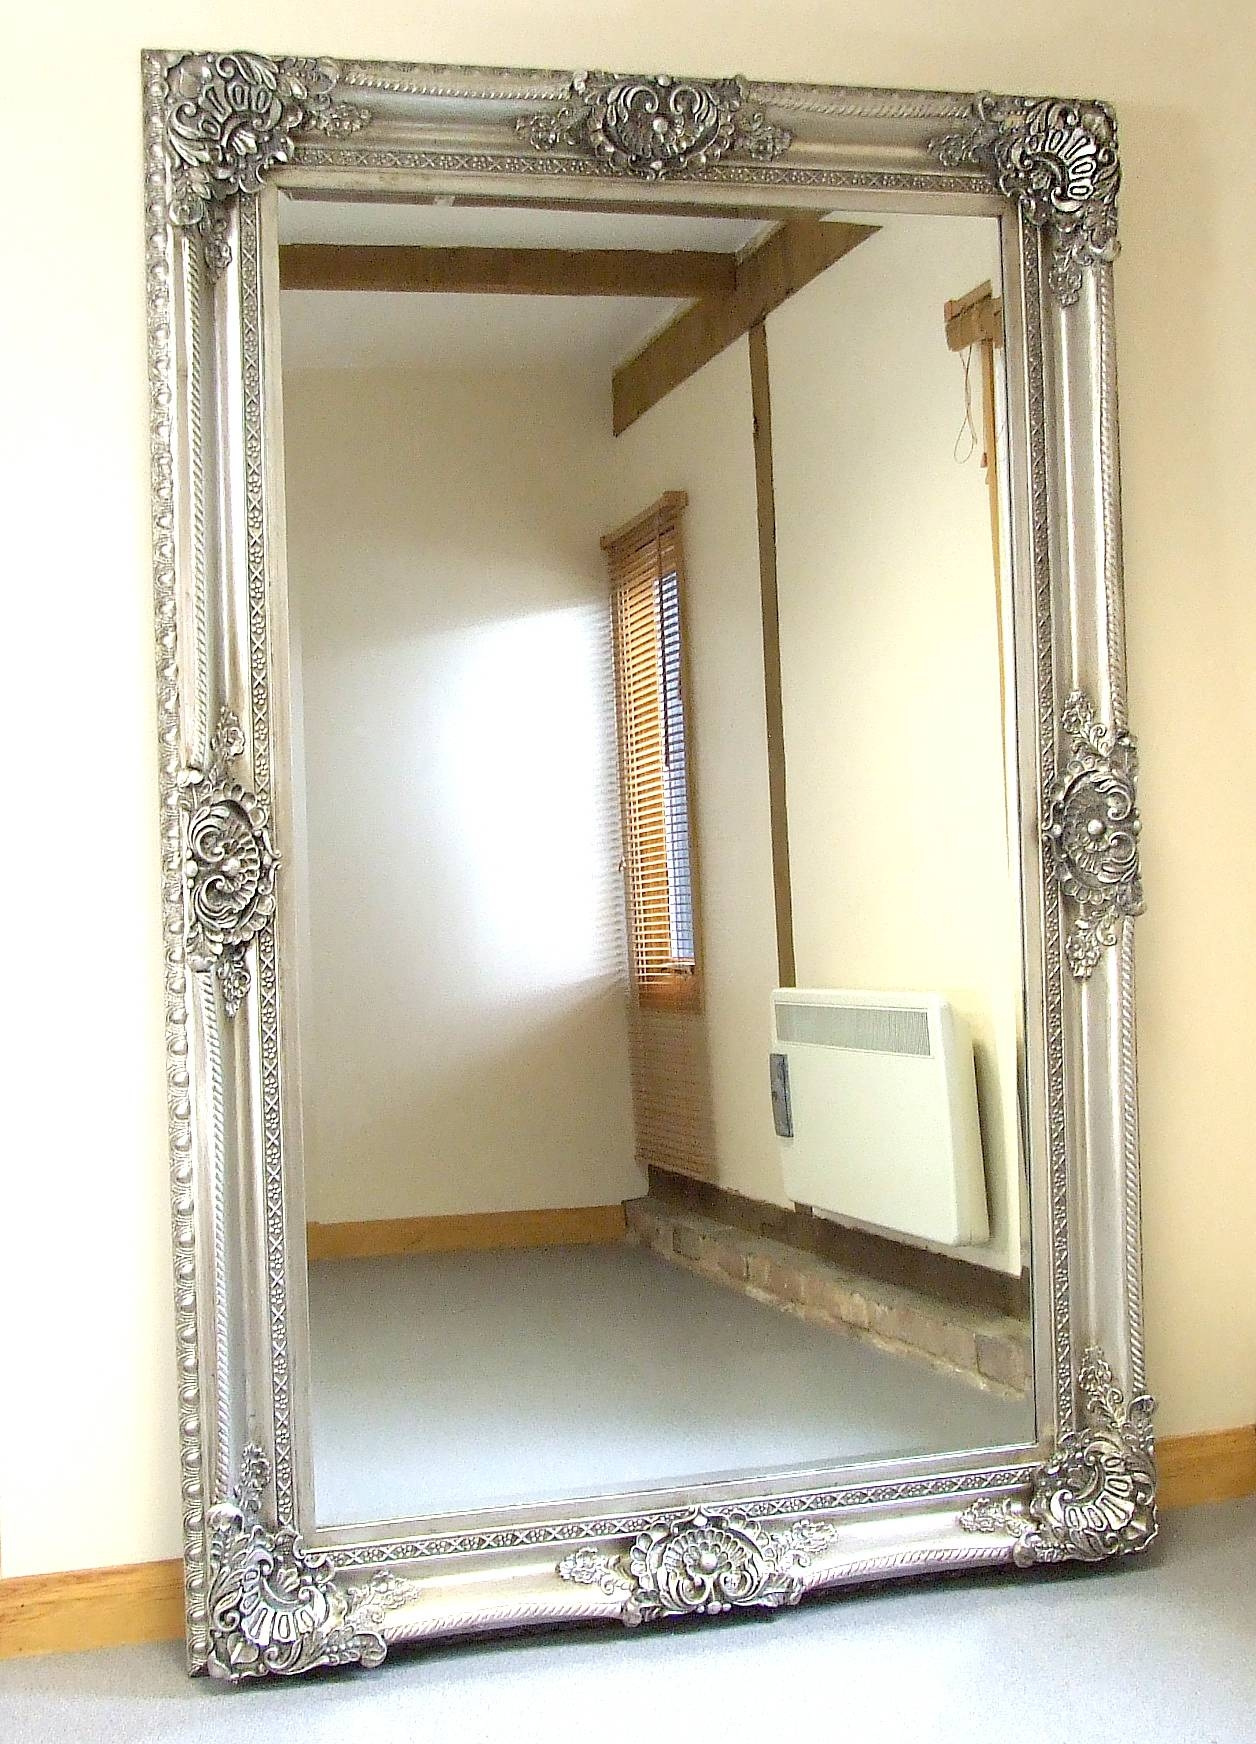 Flooring : Impressive Ornate Floor Mirror Photo Design Antique inside Ornate French Mirrors (Image 15 of 25)